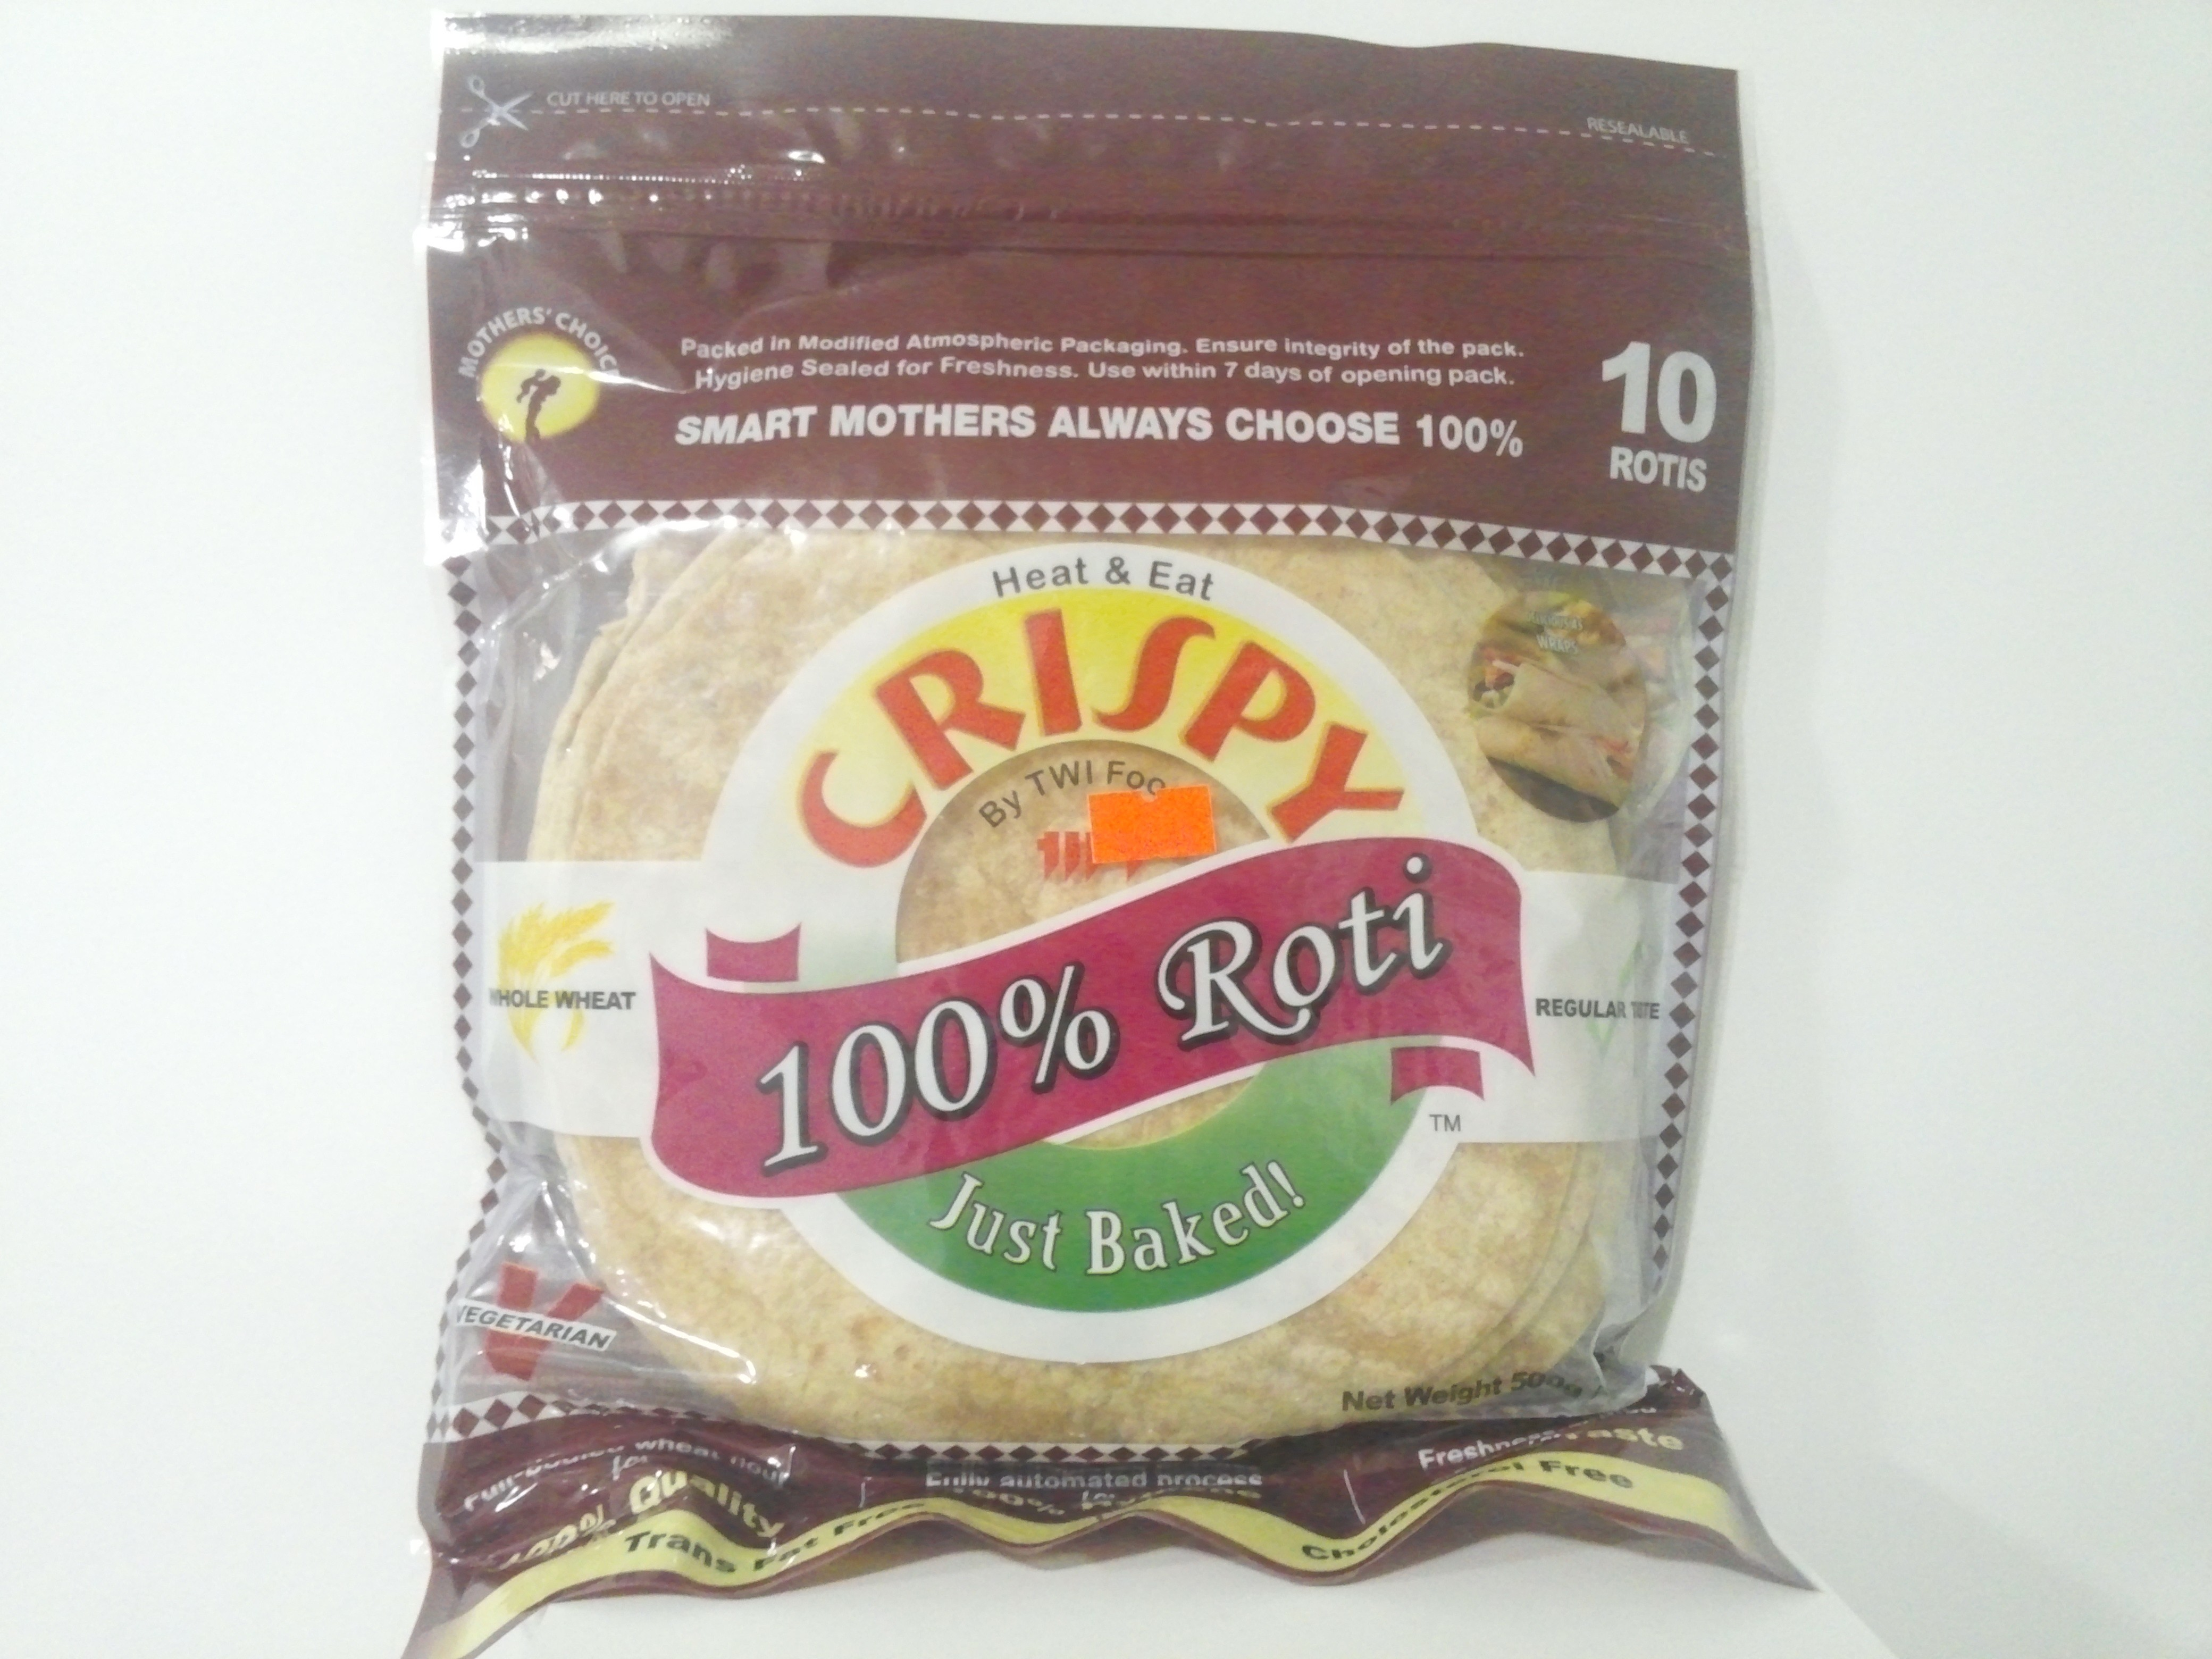 Crispy Whole Wheat Roti 10 Pcs 1.6 oz